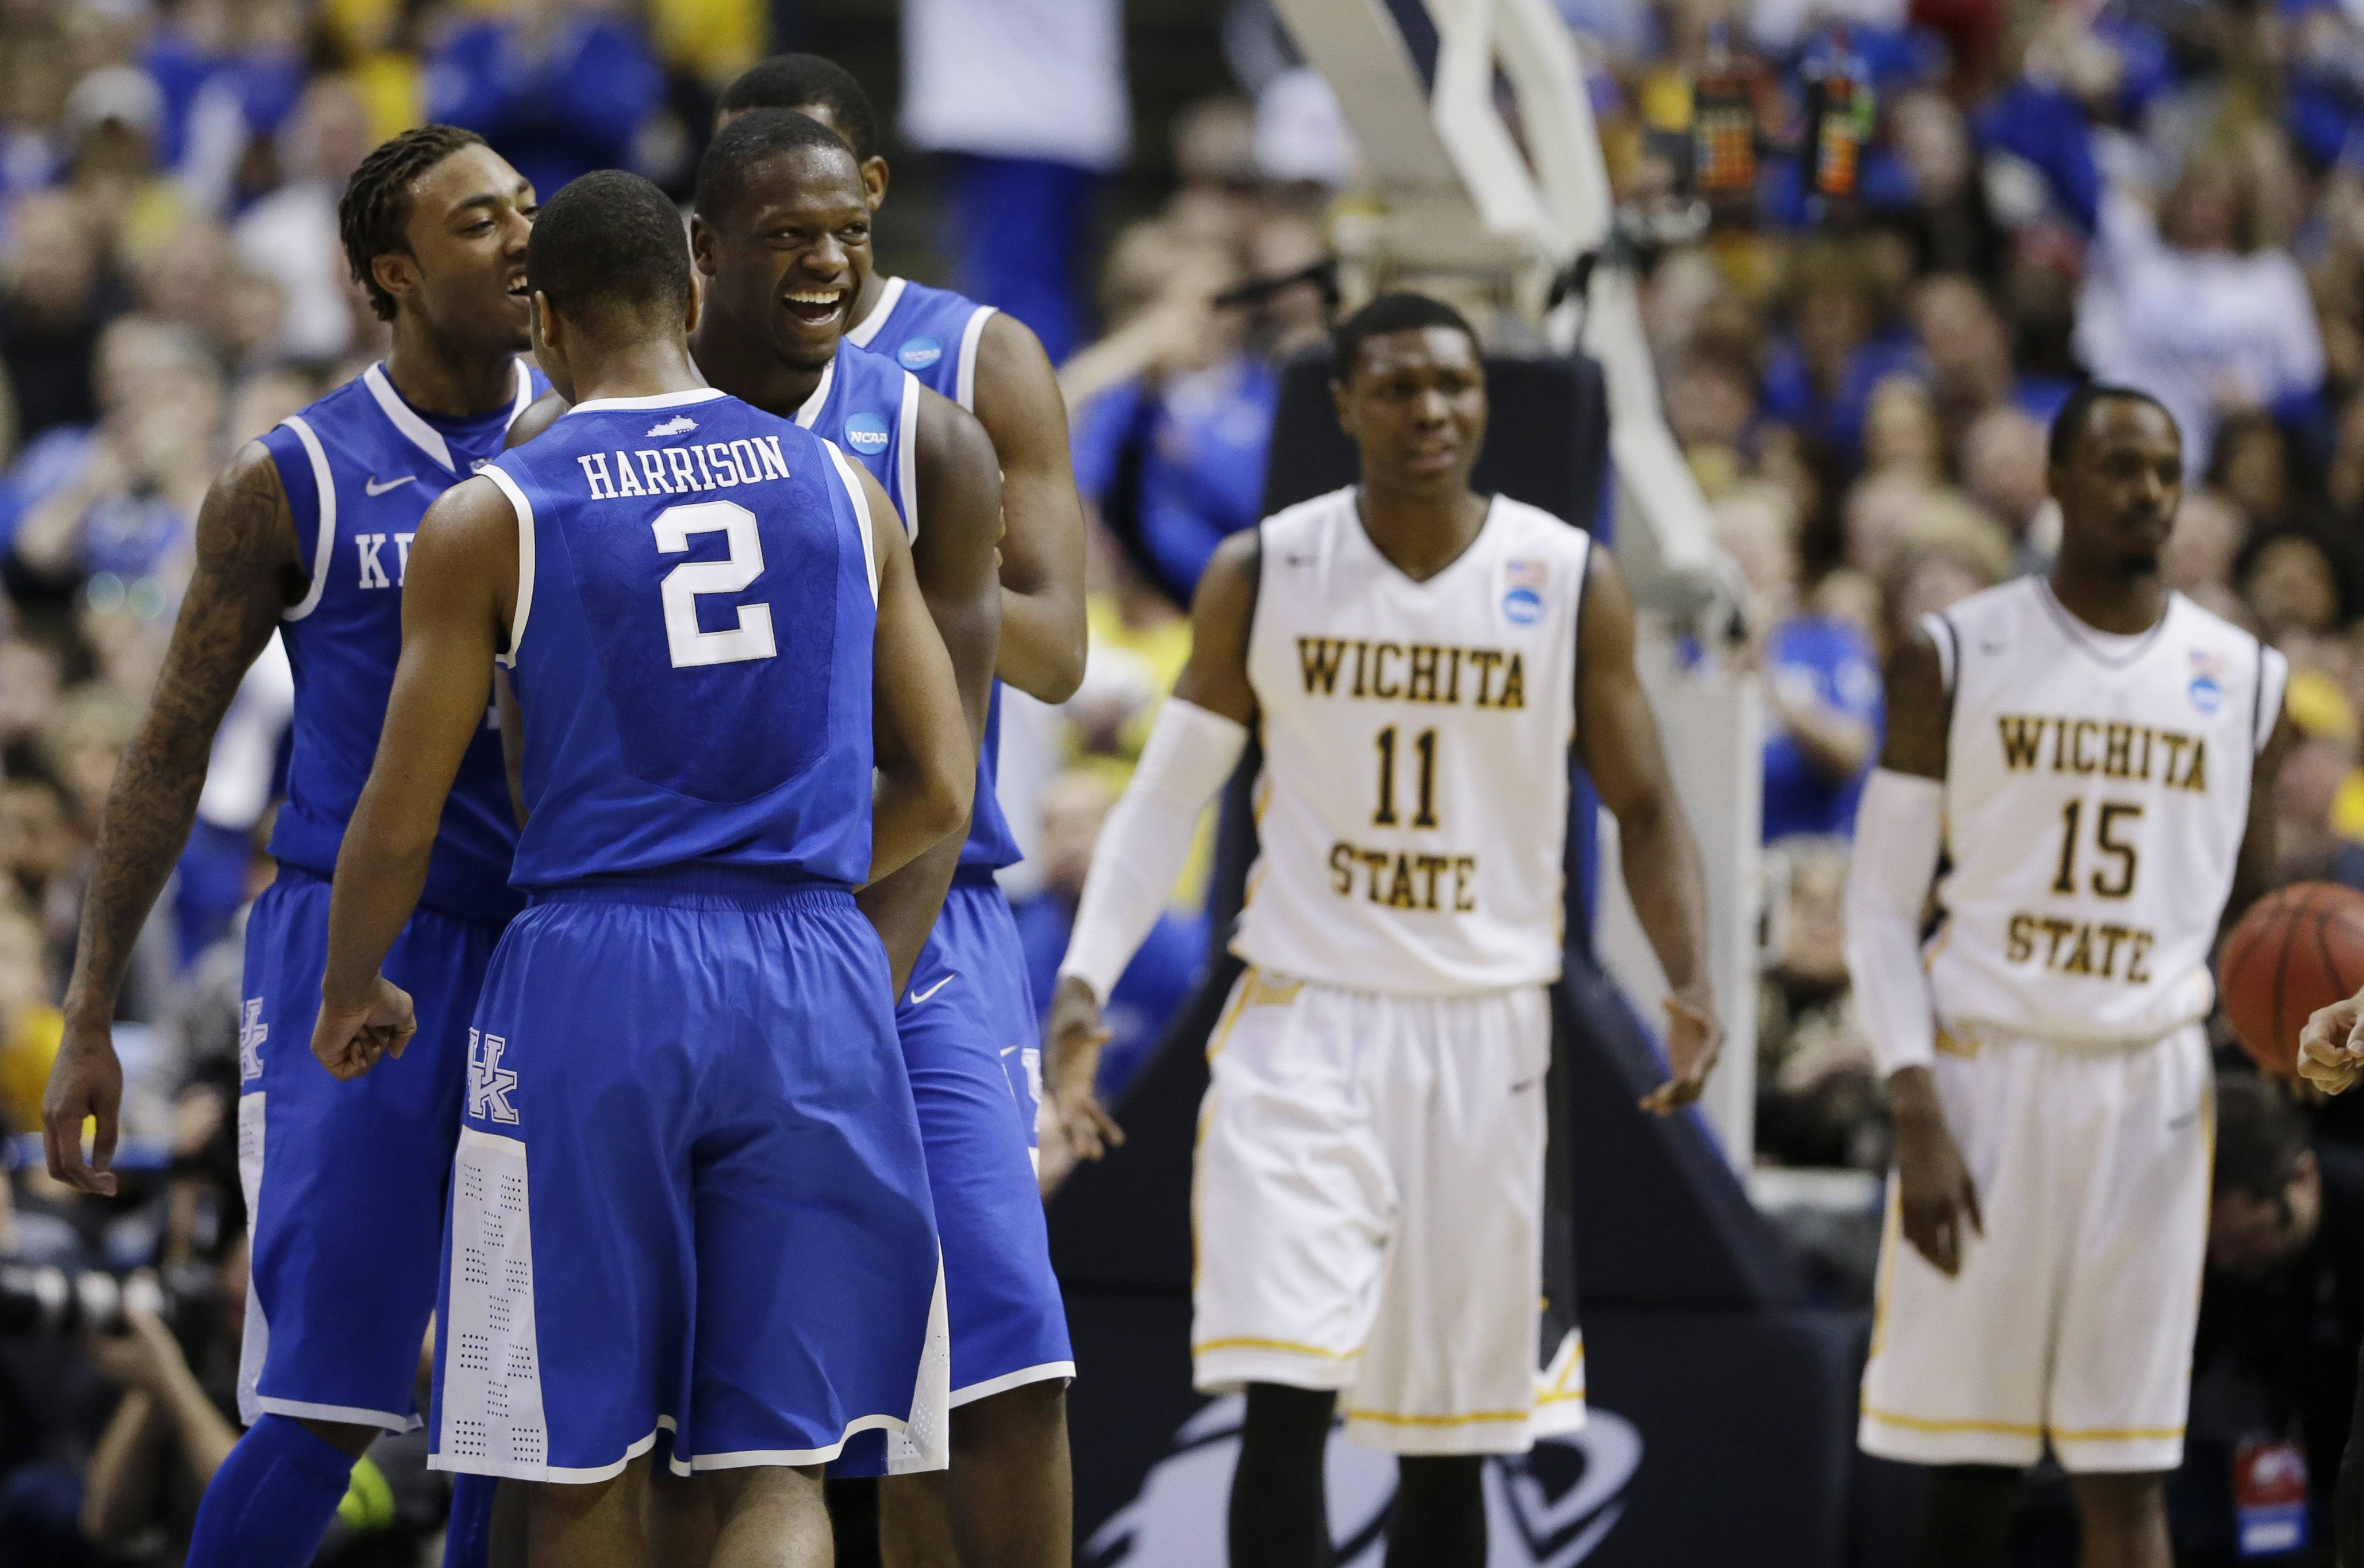 Kentucky players from left, guard/forward James Young (1), guard Aaron Harrison (2) and forward Julius Randle (30) celebrate against Wichita State during the second half of a third-round game of the NCAA college basketball tournament Sunday, March 23, 2014, in St. Louis.